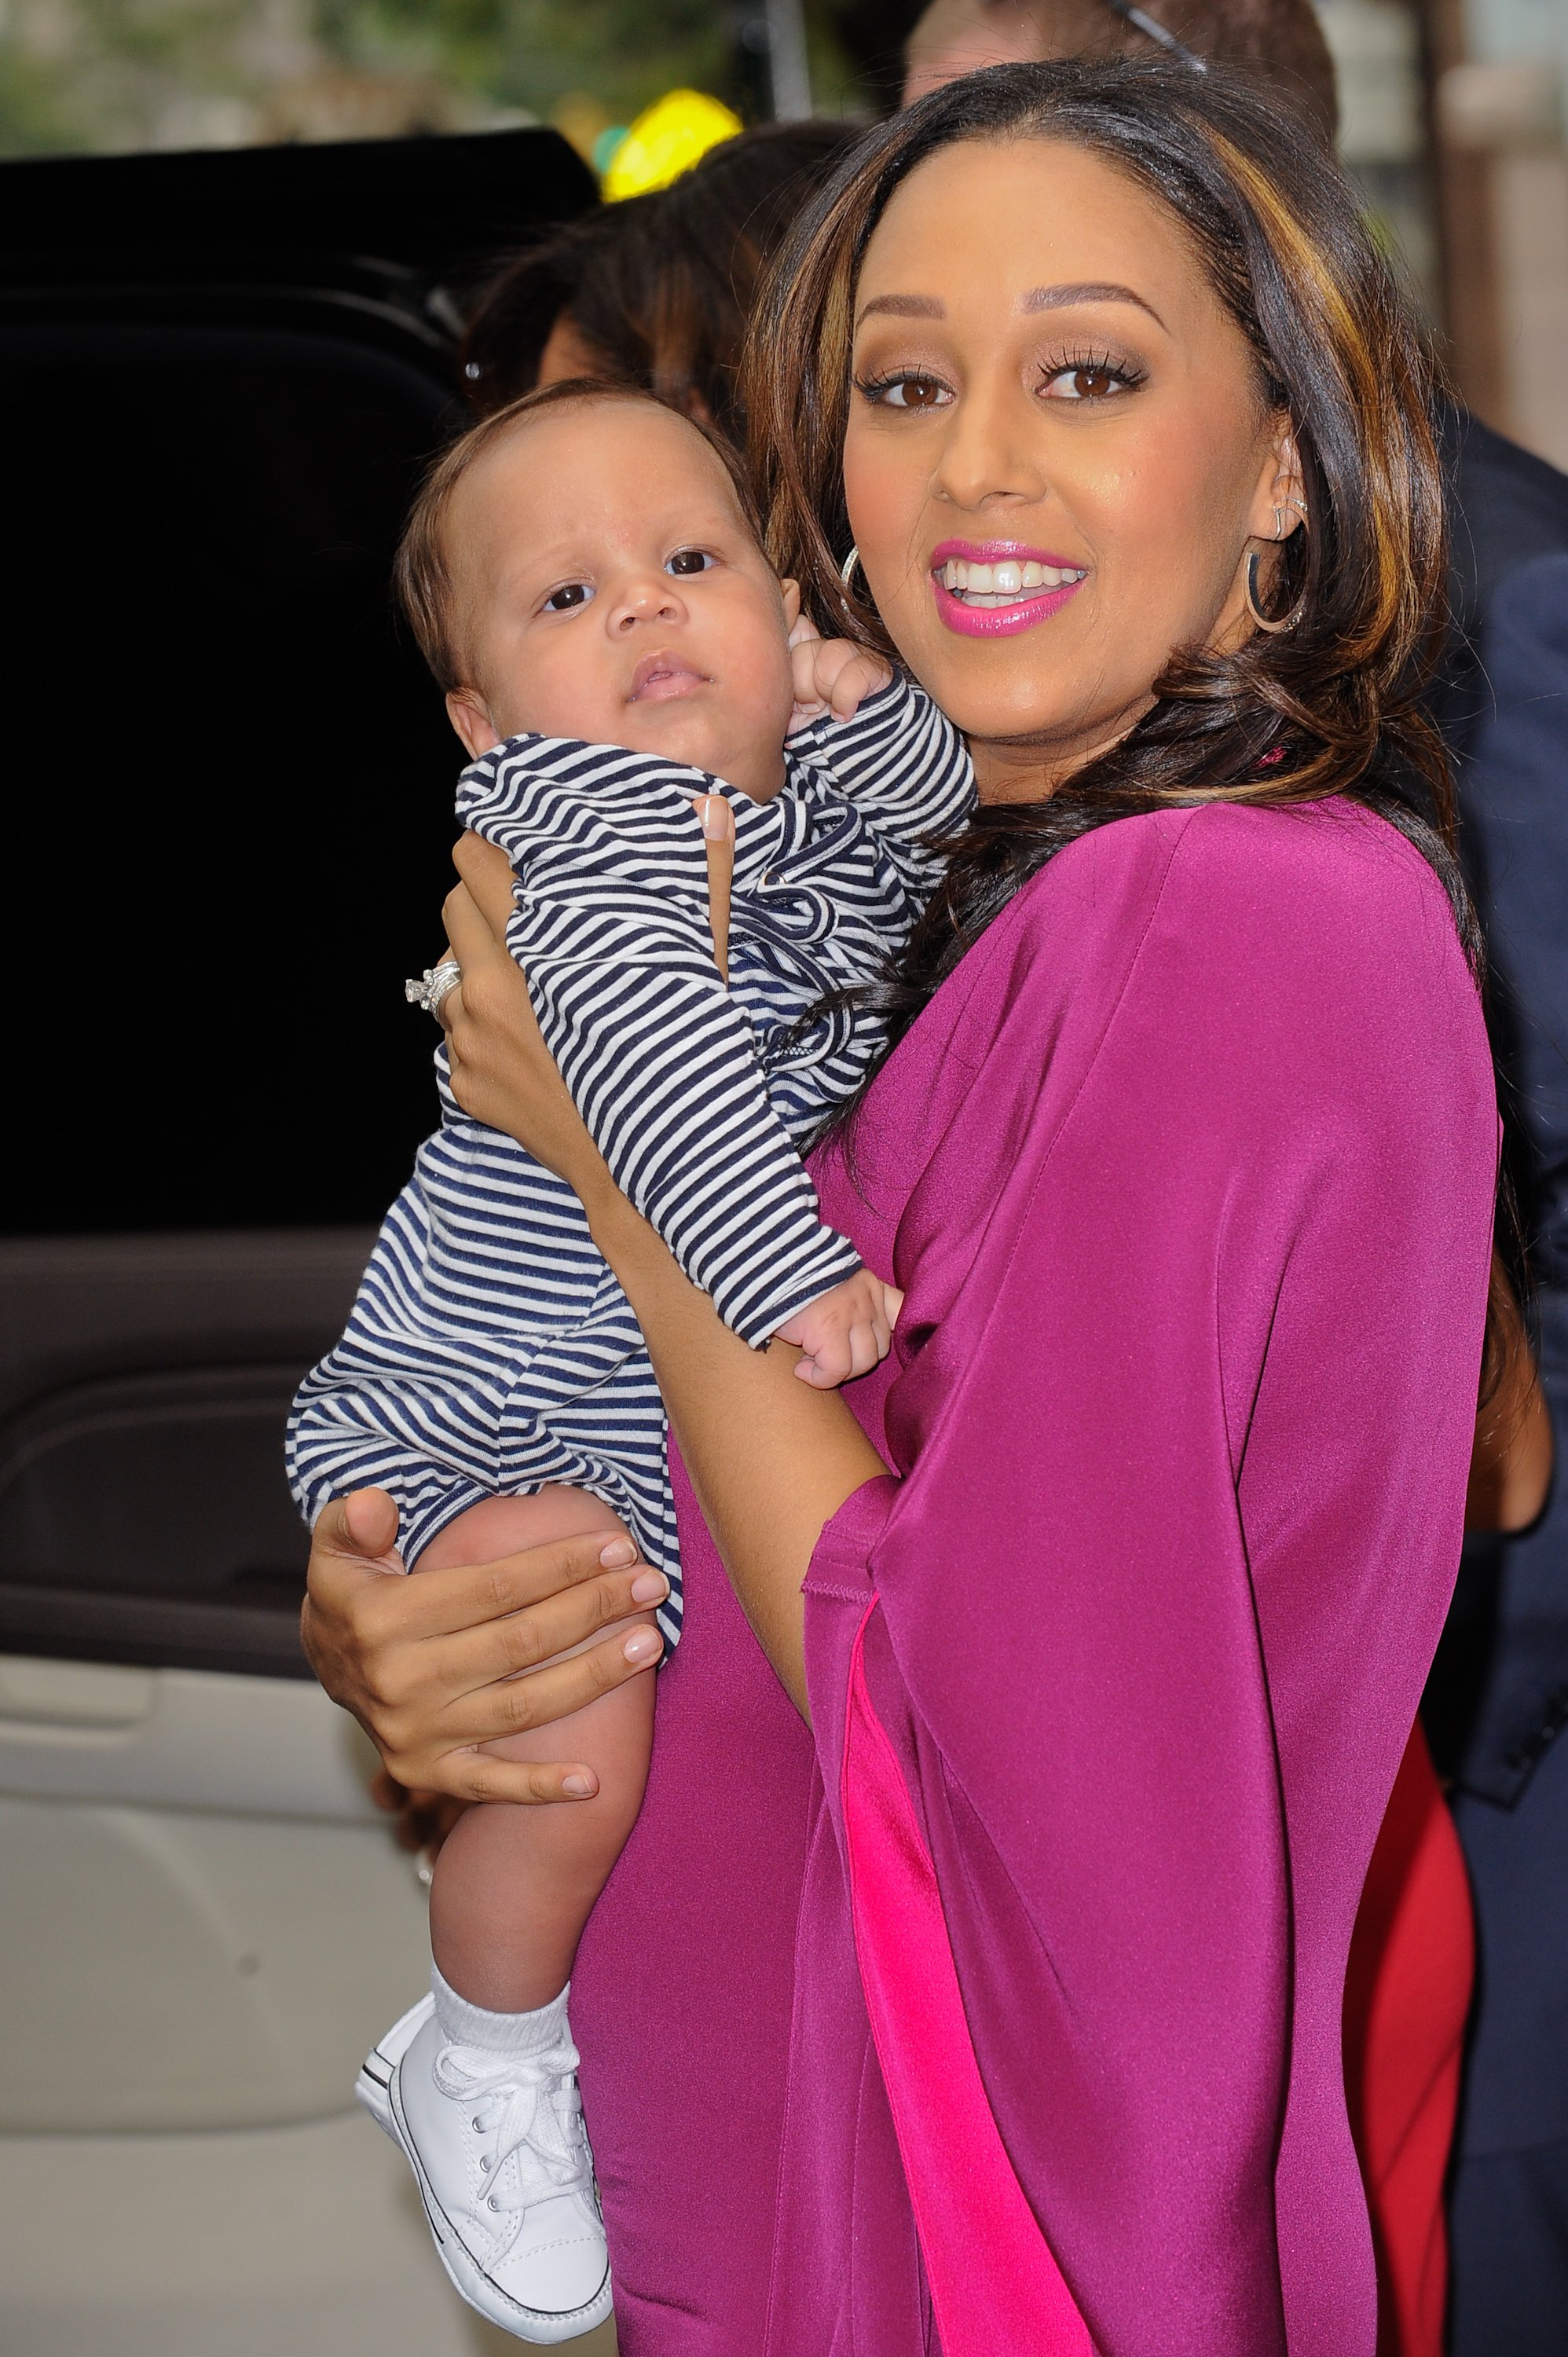 """Tia Mowry and son Cree Hardrict leave the """"Wendy Williams Show"""" set in New York City on September 27, 2011 